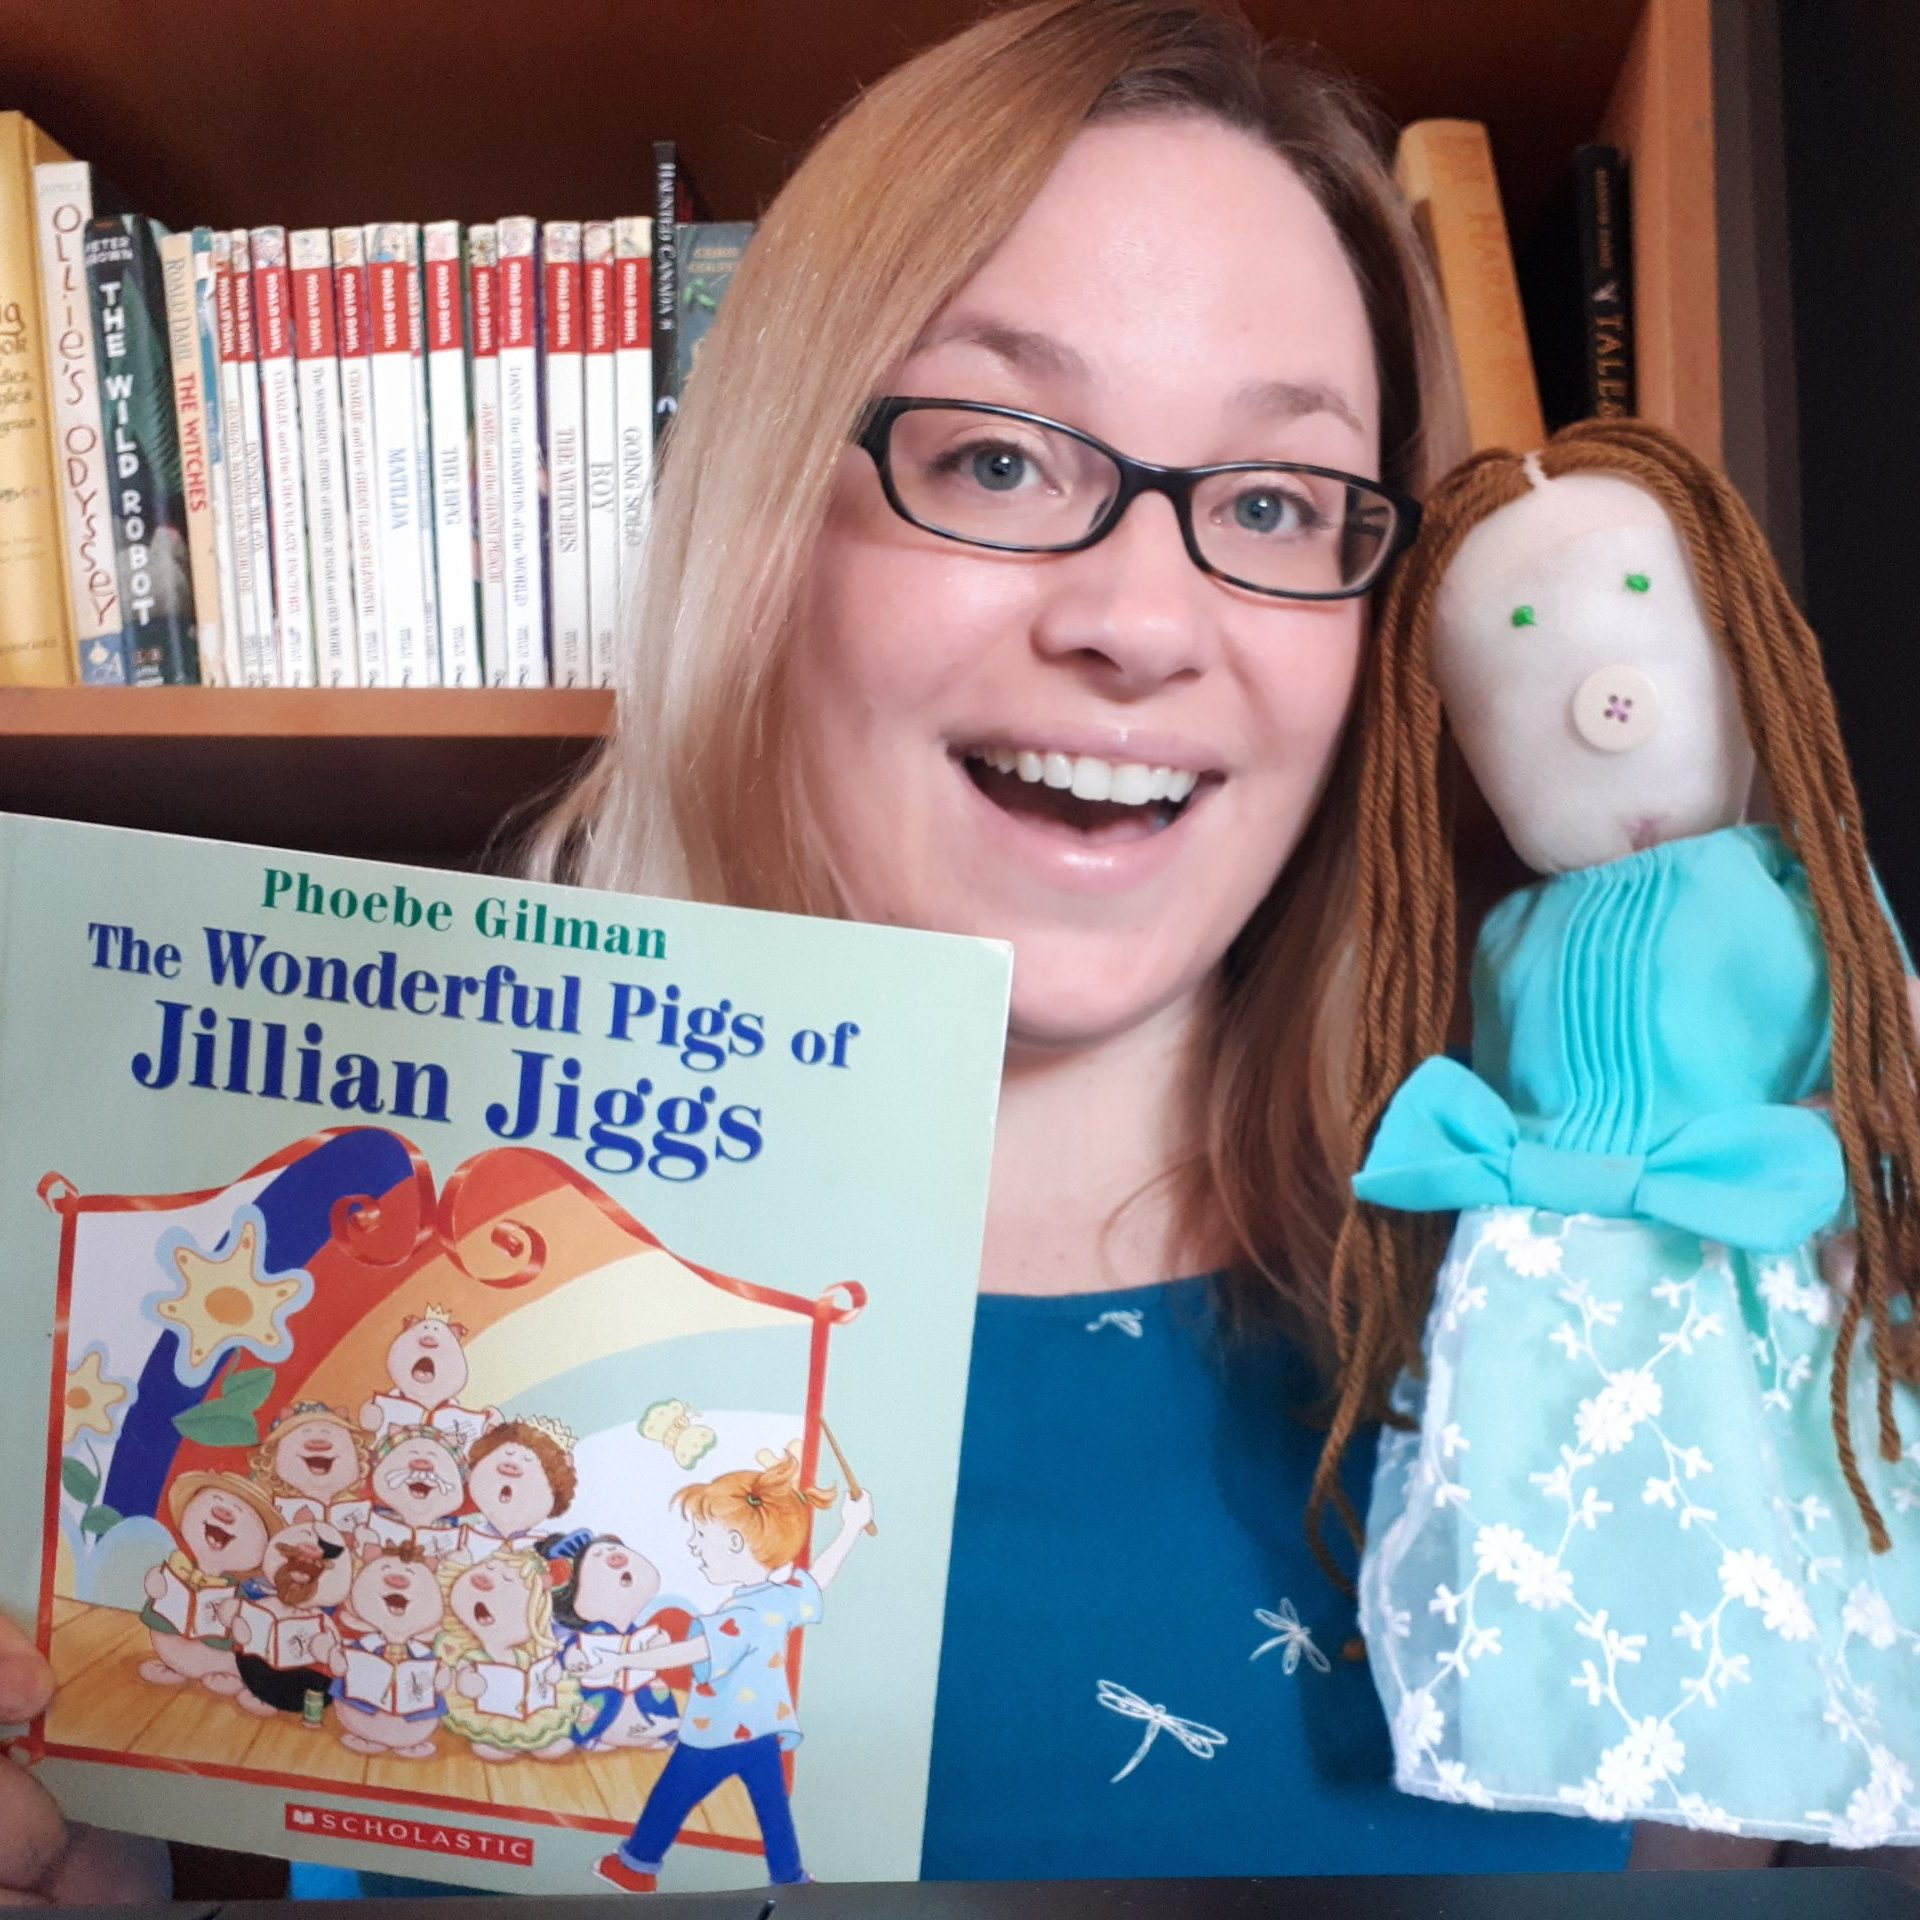 Storytime: The Wonderful Pigs of Jillian Jiggs